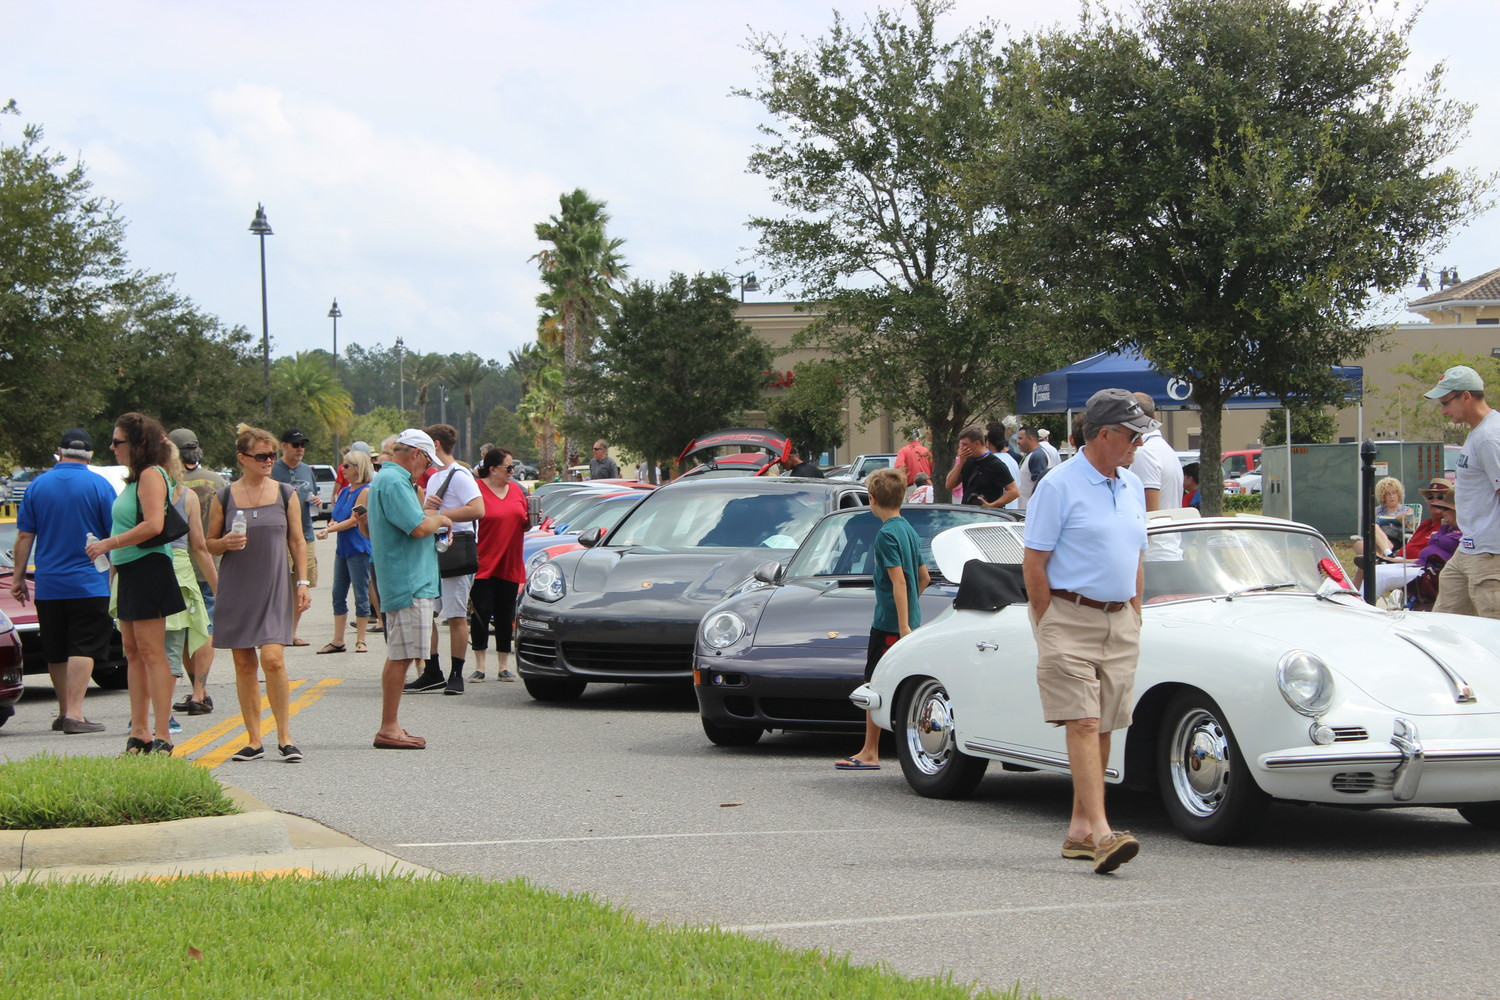 Car enthusiasts gather at Nocatee Town Center for the 2017 Ponte Vedra Auto Show.